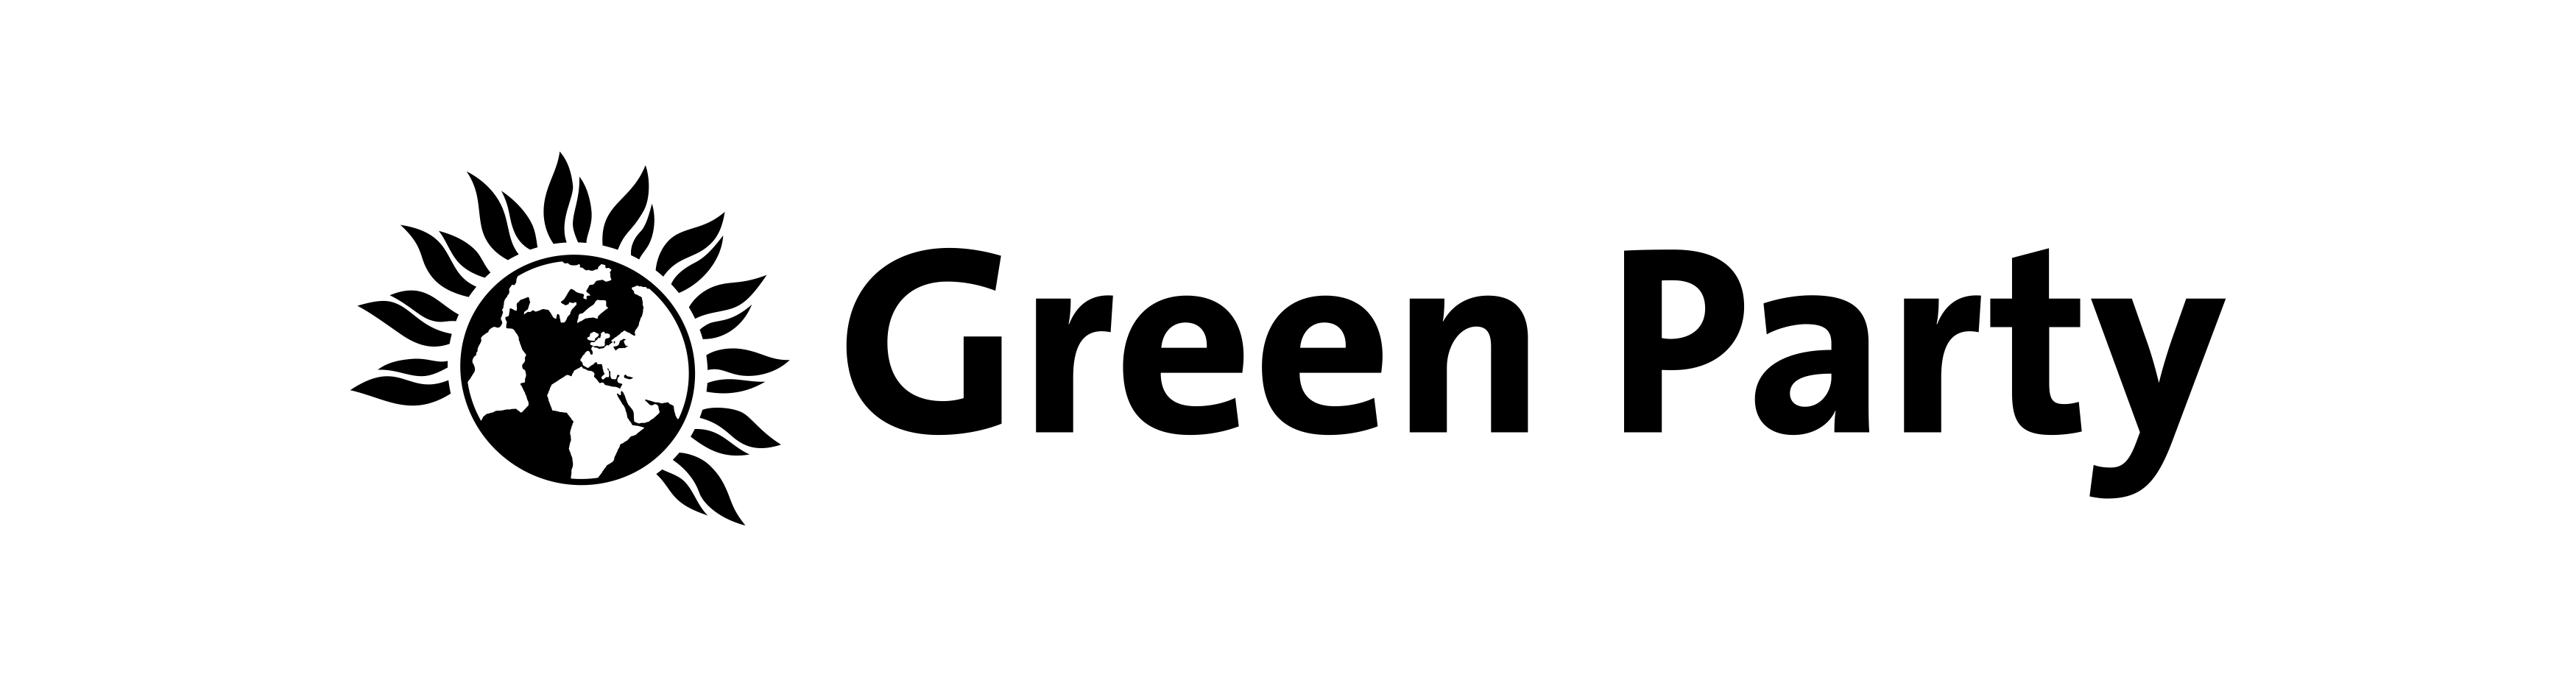 Green Party of England and Wales